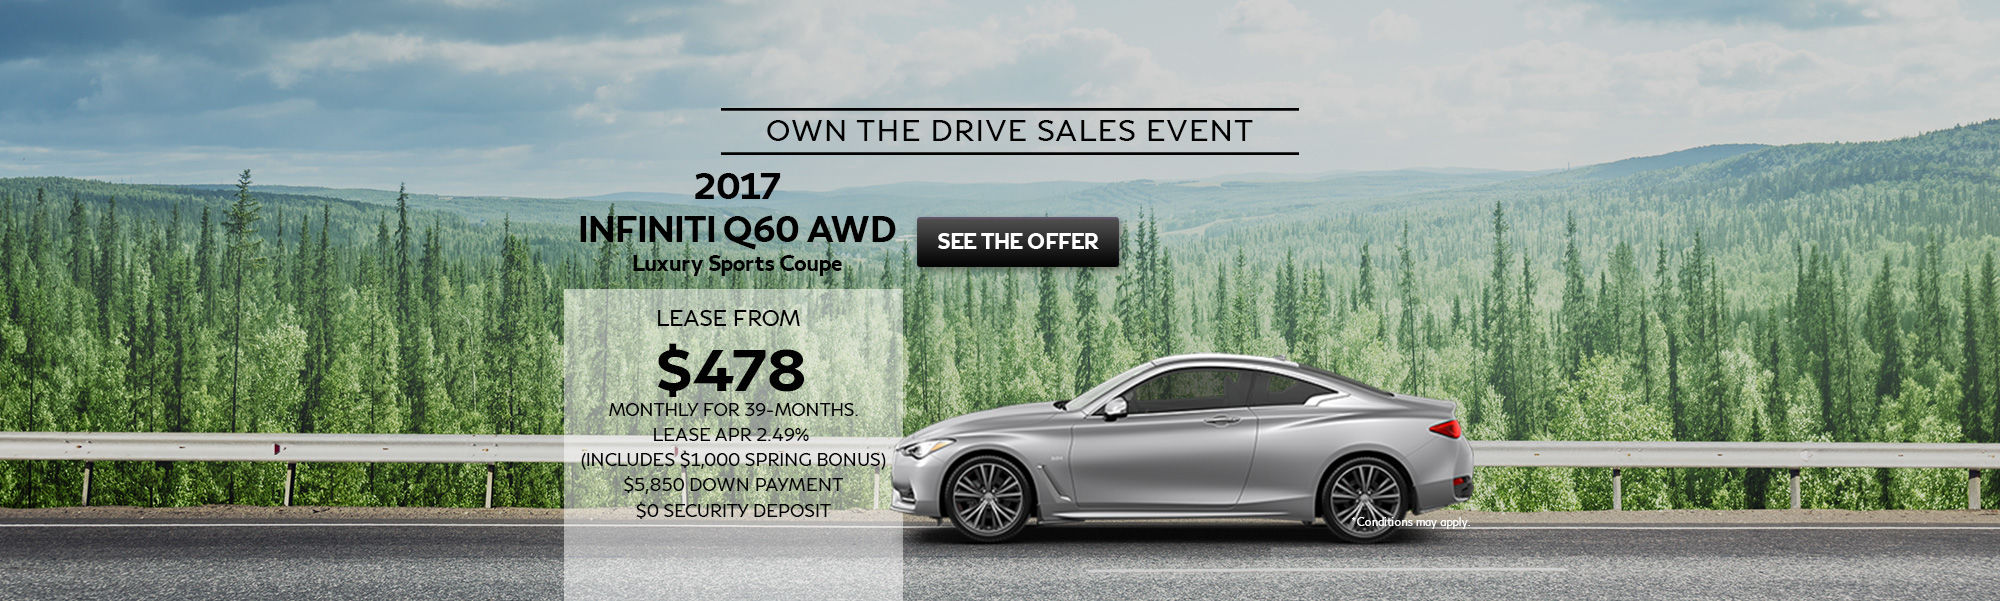 Own The Drive Sales Event Q60 AWD